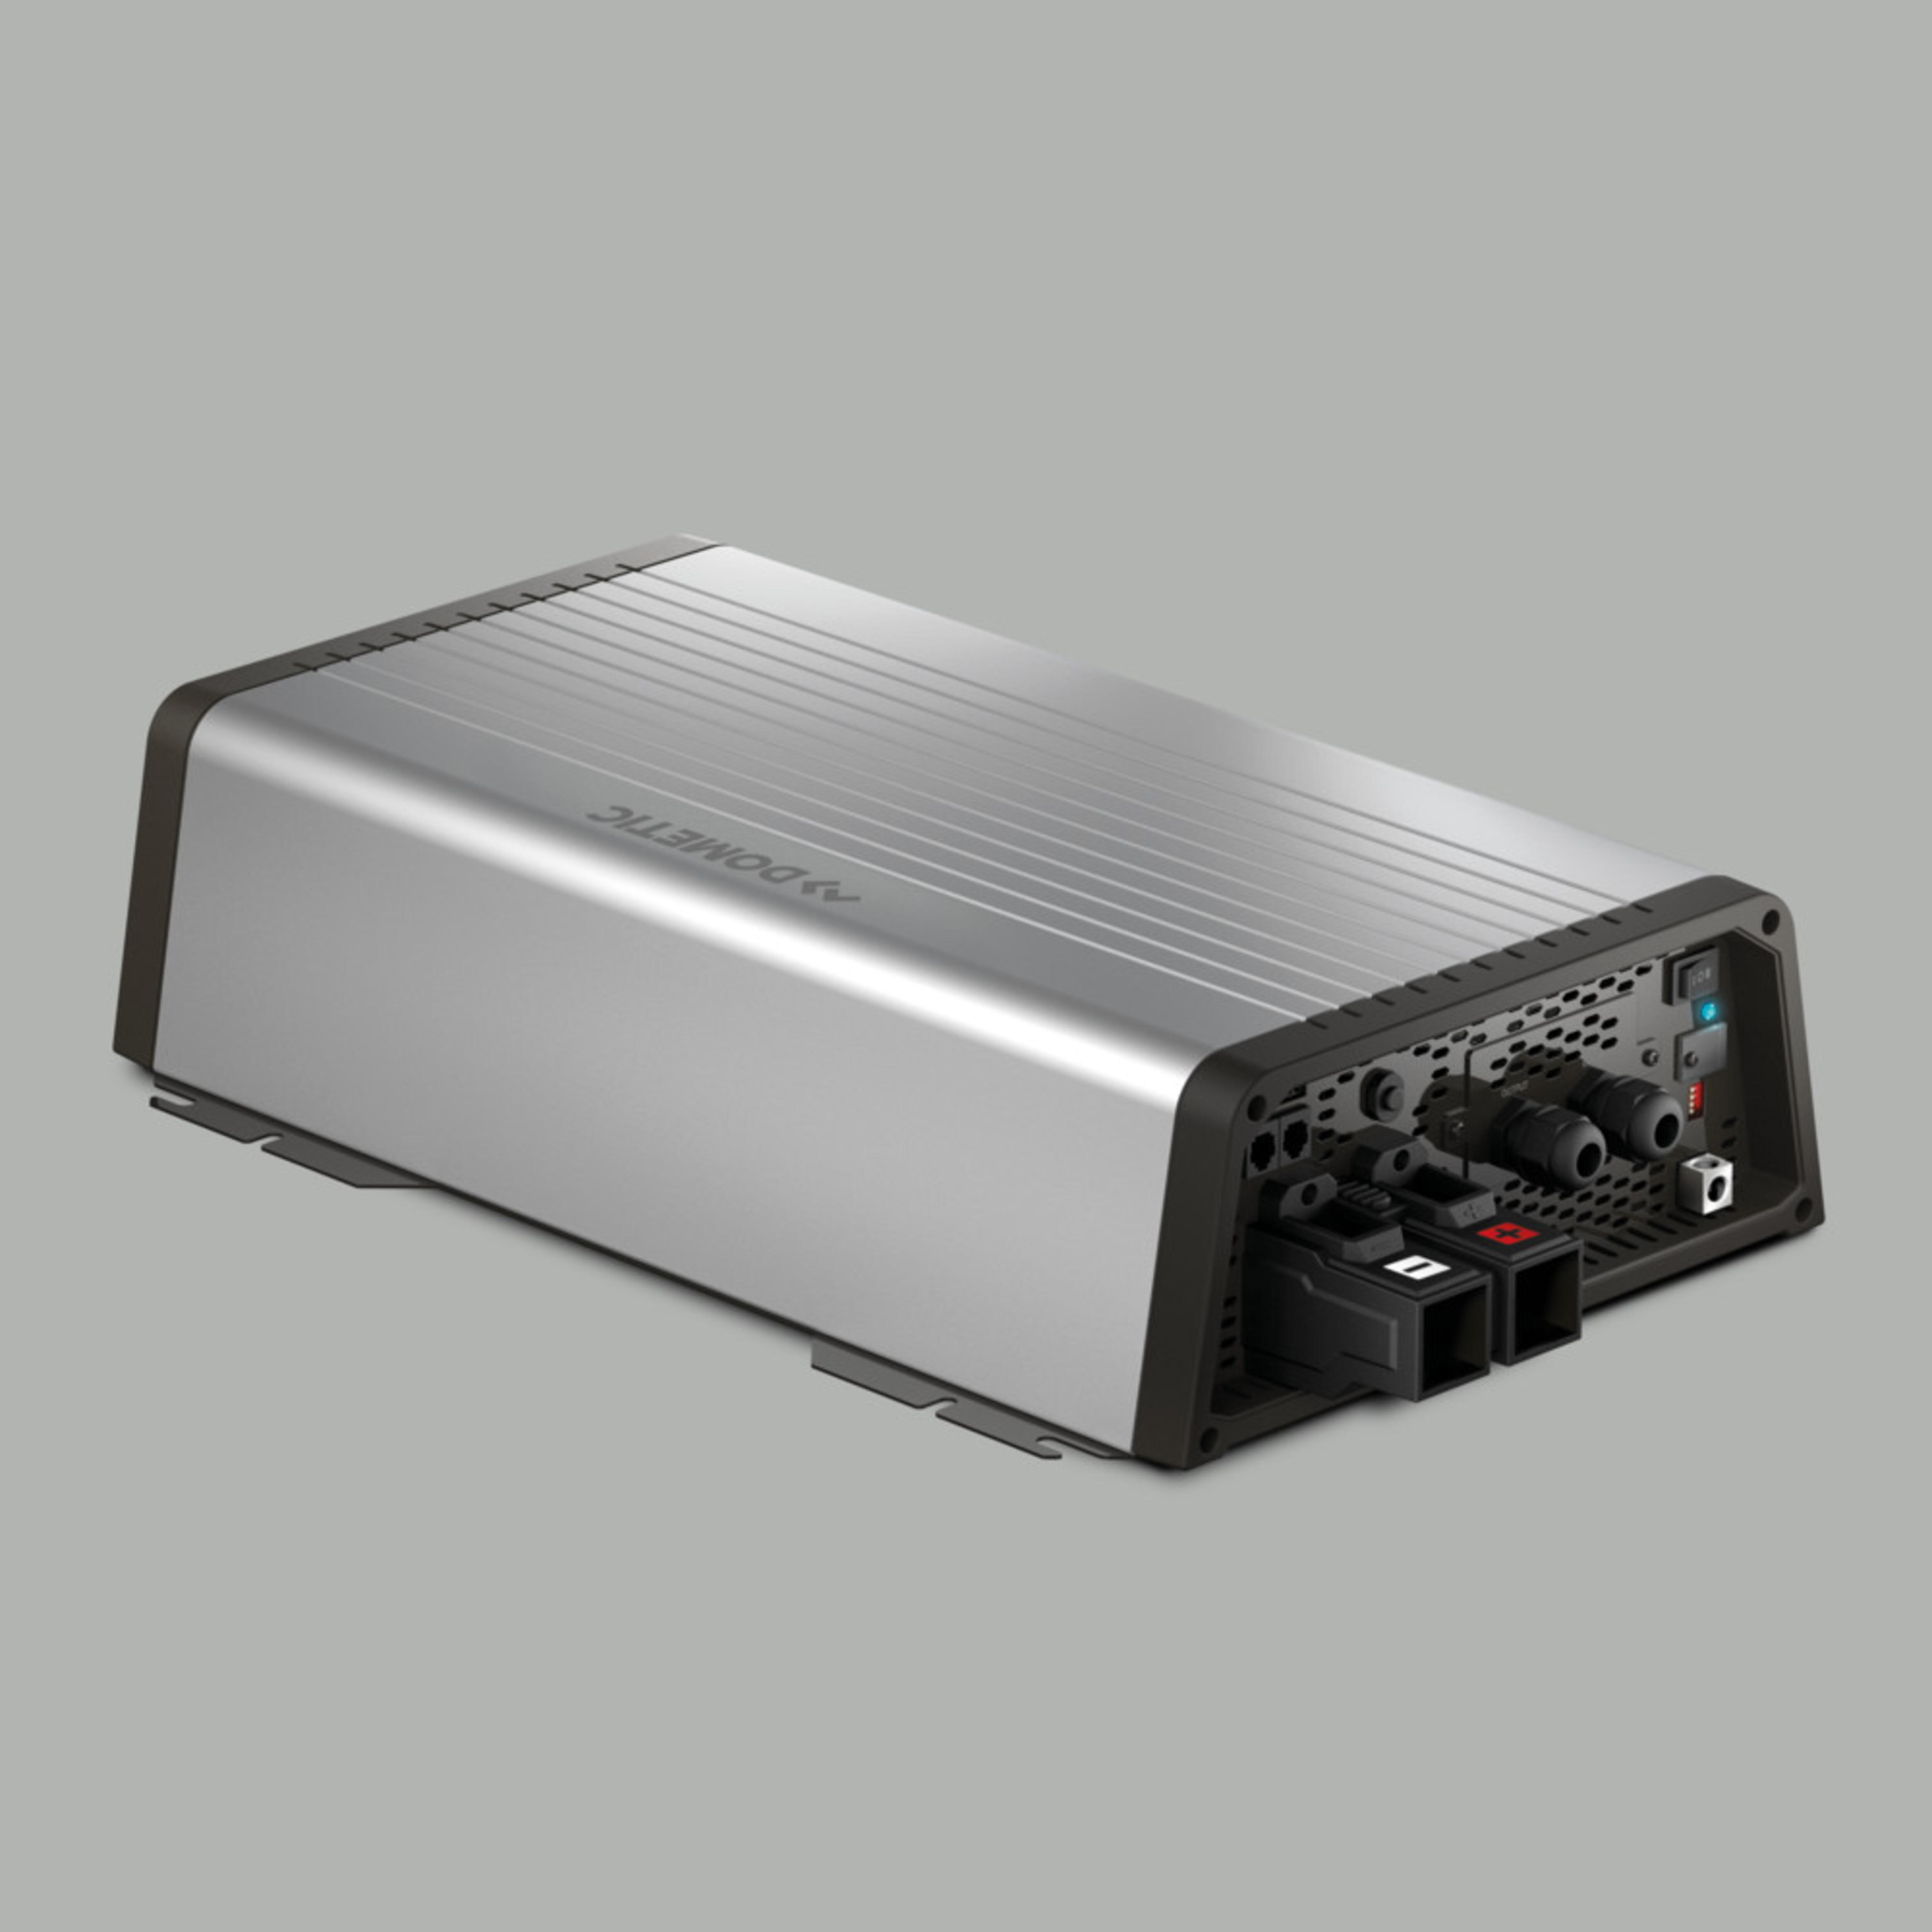 Dometic SinePower DSP 3512T